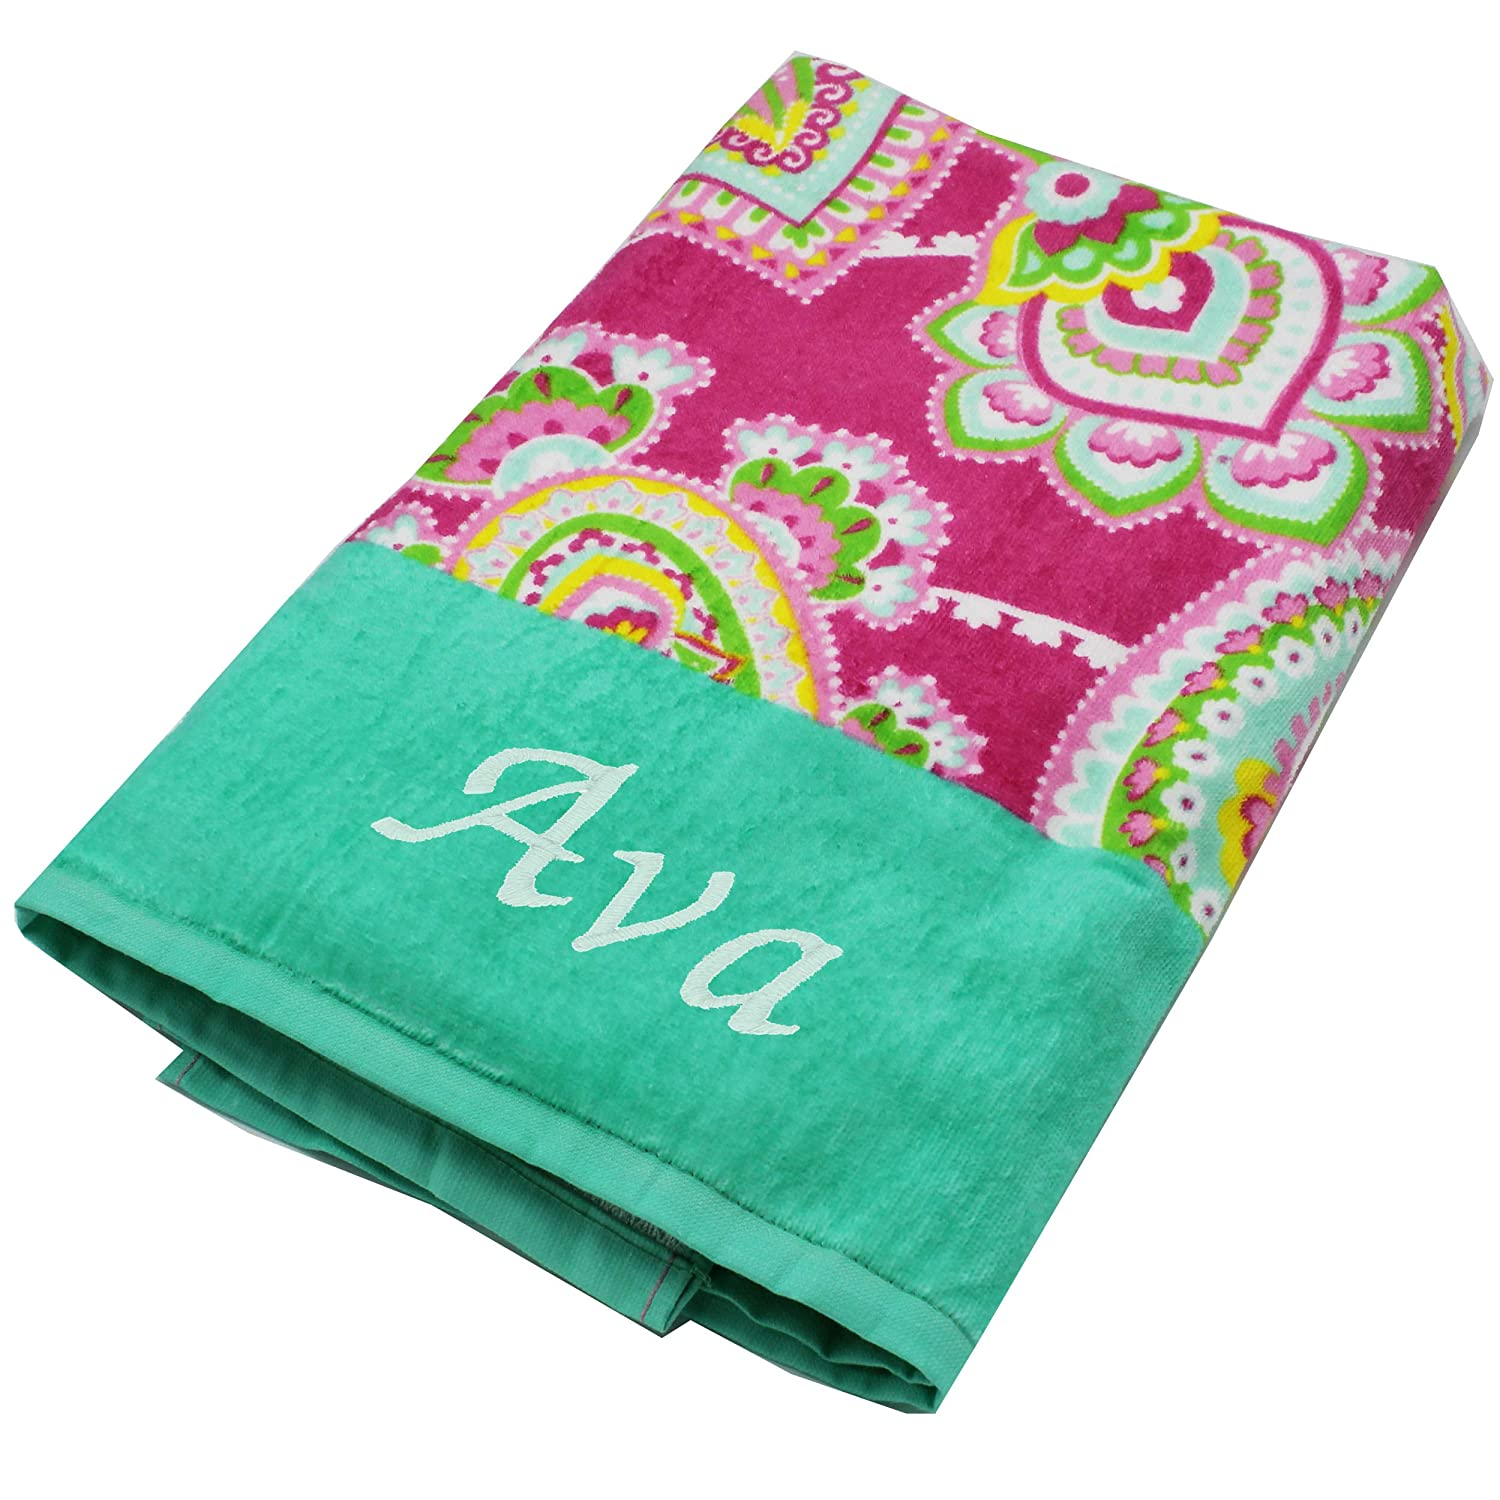 Personalized Beach Towels Monogrammed Gifts For Kids Her Him Custom Embroidered Towel Paslies